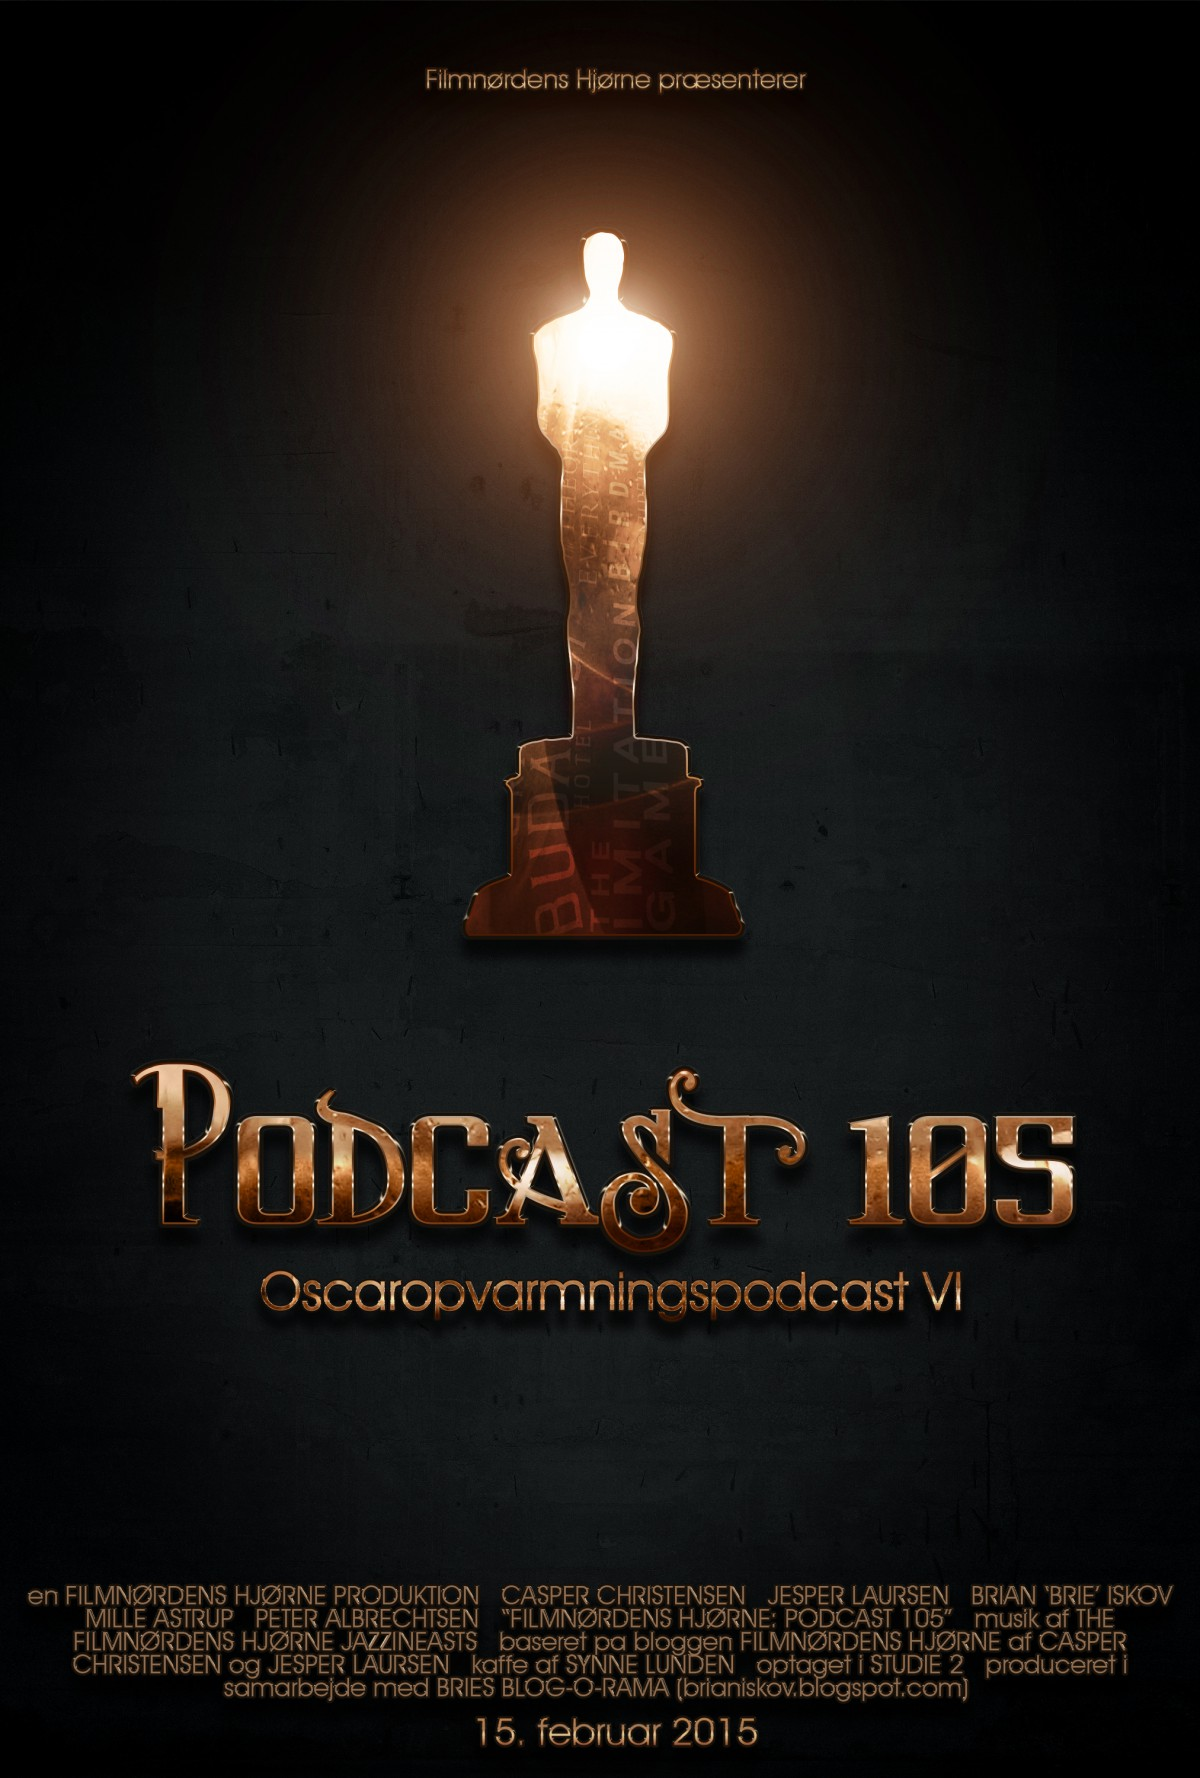 Poster for Podcast 105 III